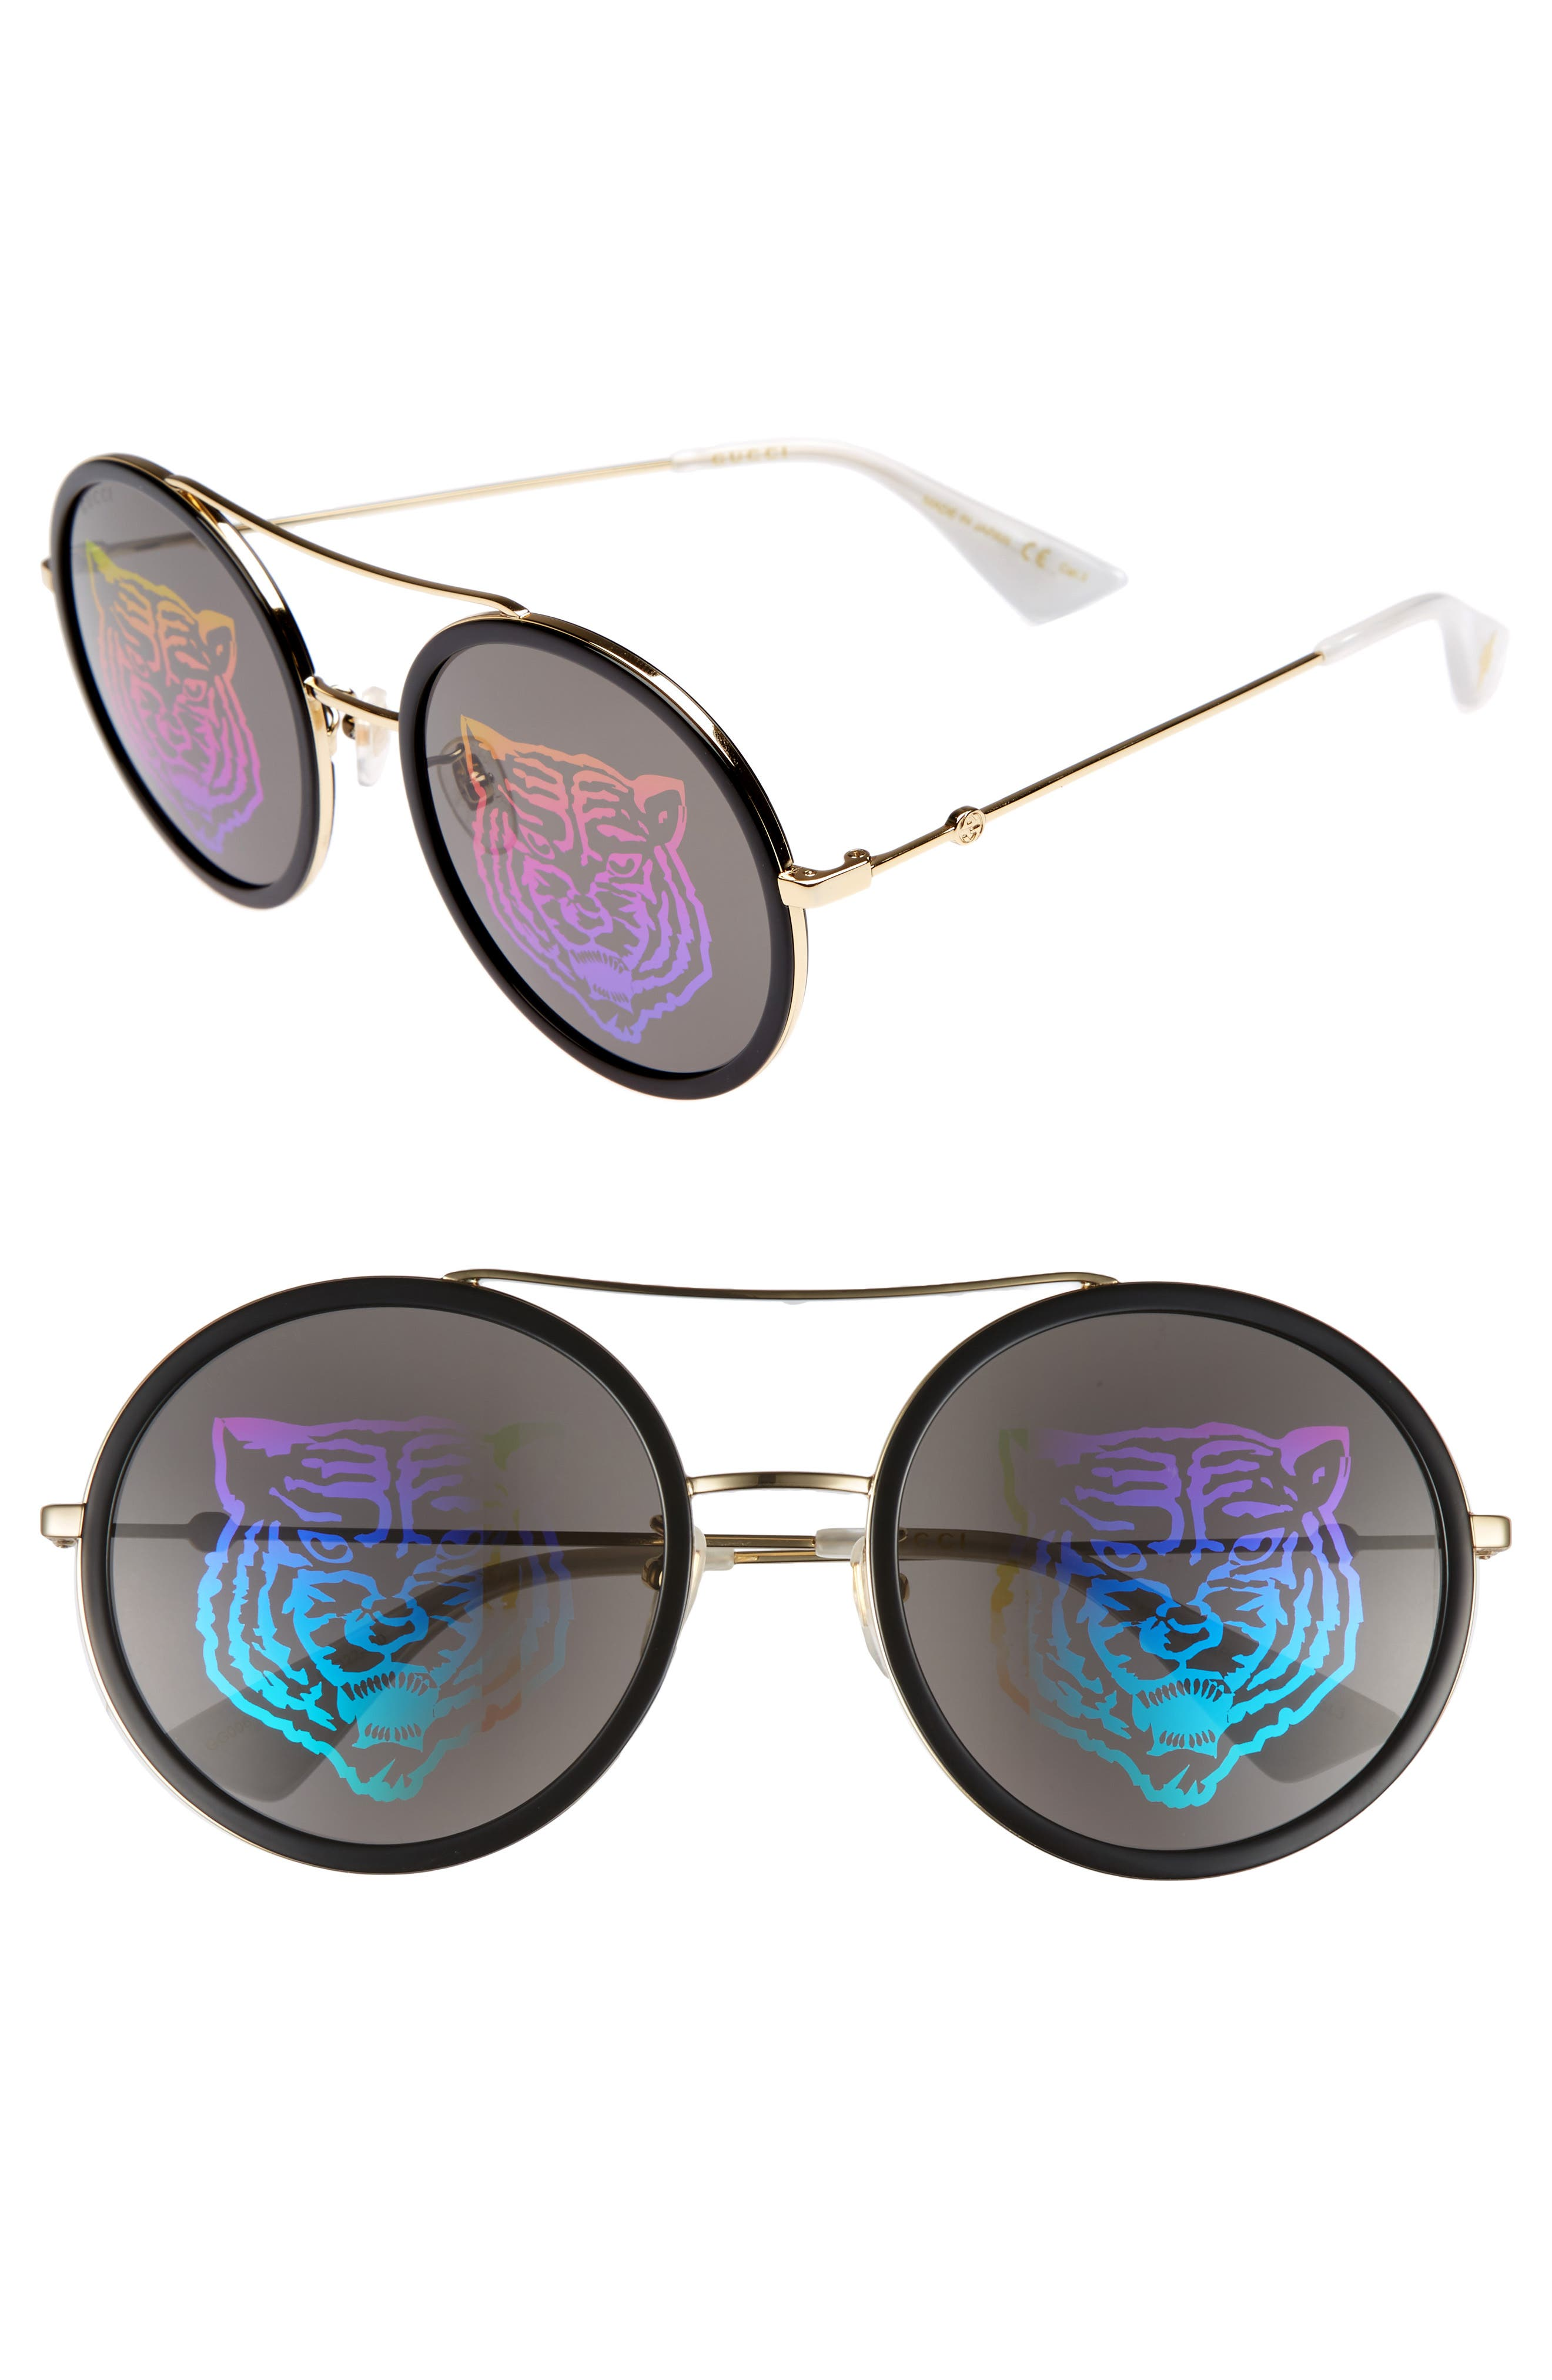 56mm Round Mirrored Aviator Sunglasses,                         Main,                         color, GOLD/ TIGER